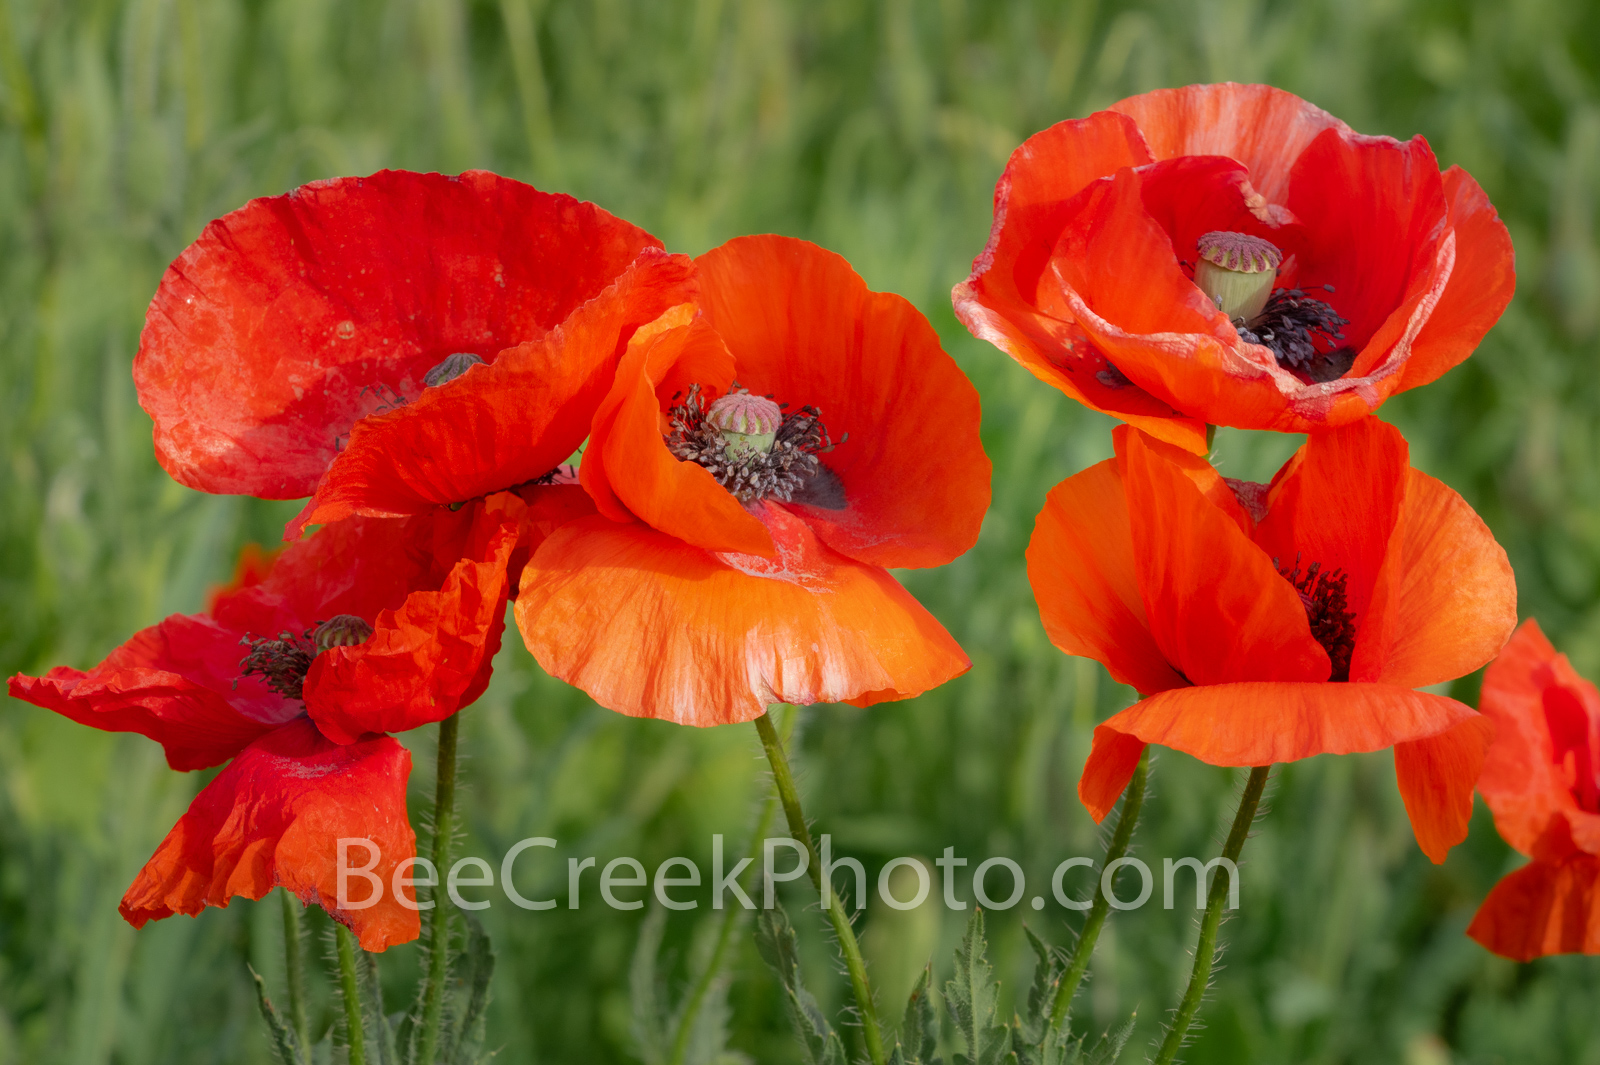 Red Corn Poppies - We capture these red corn poppies in a field of poppies we wanted to capture them up close. Some also call...